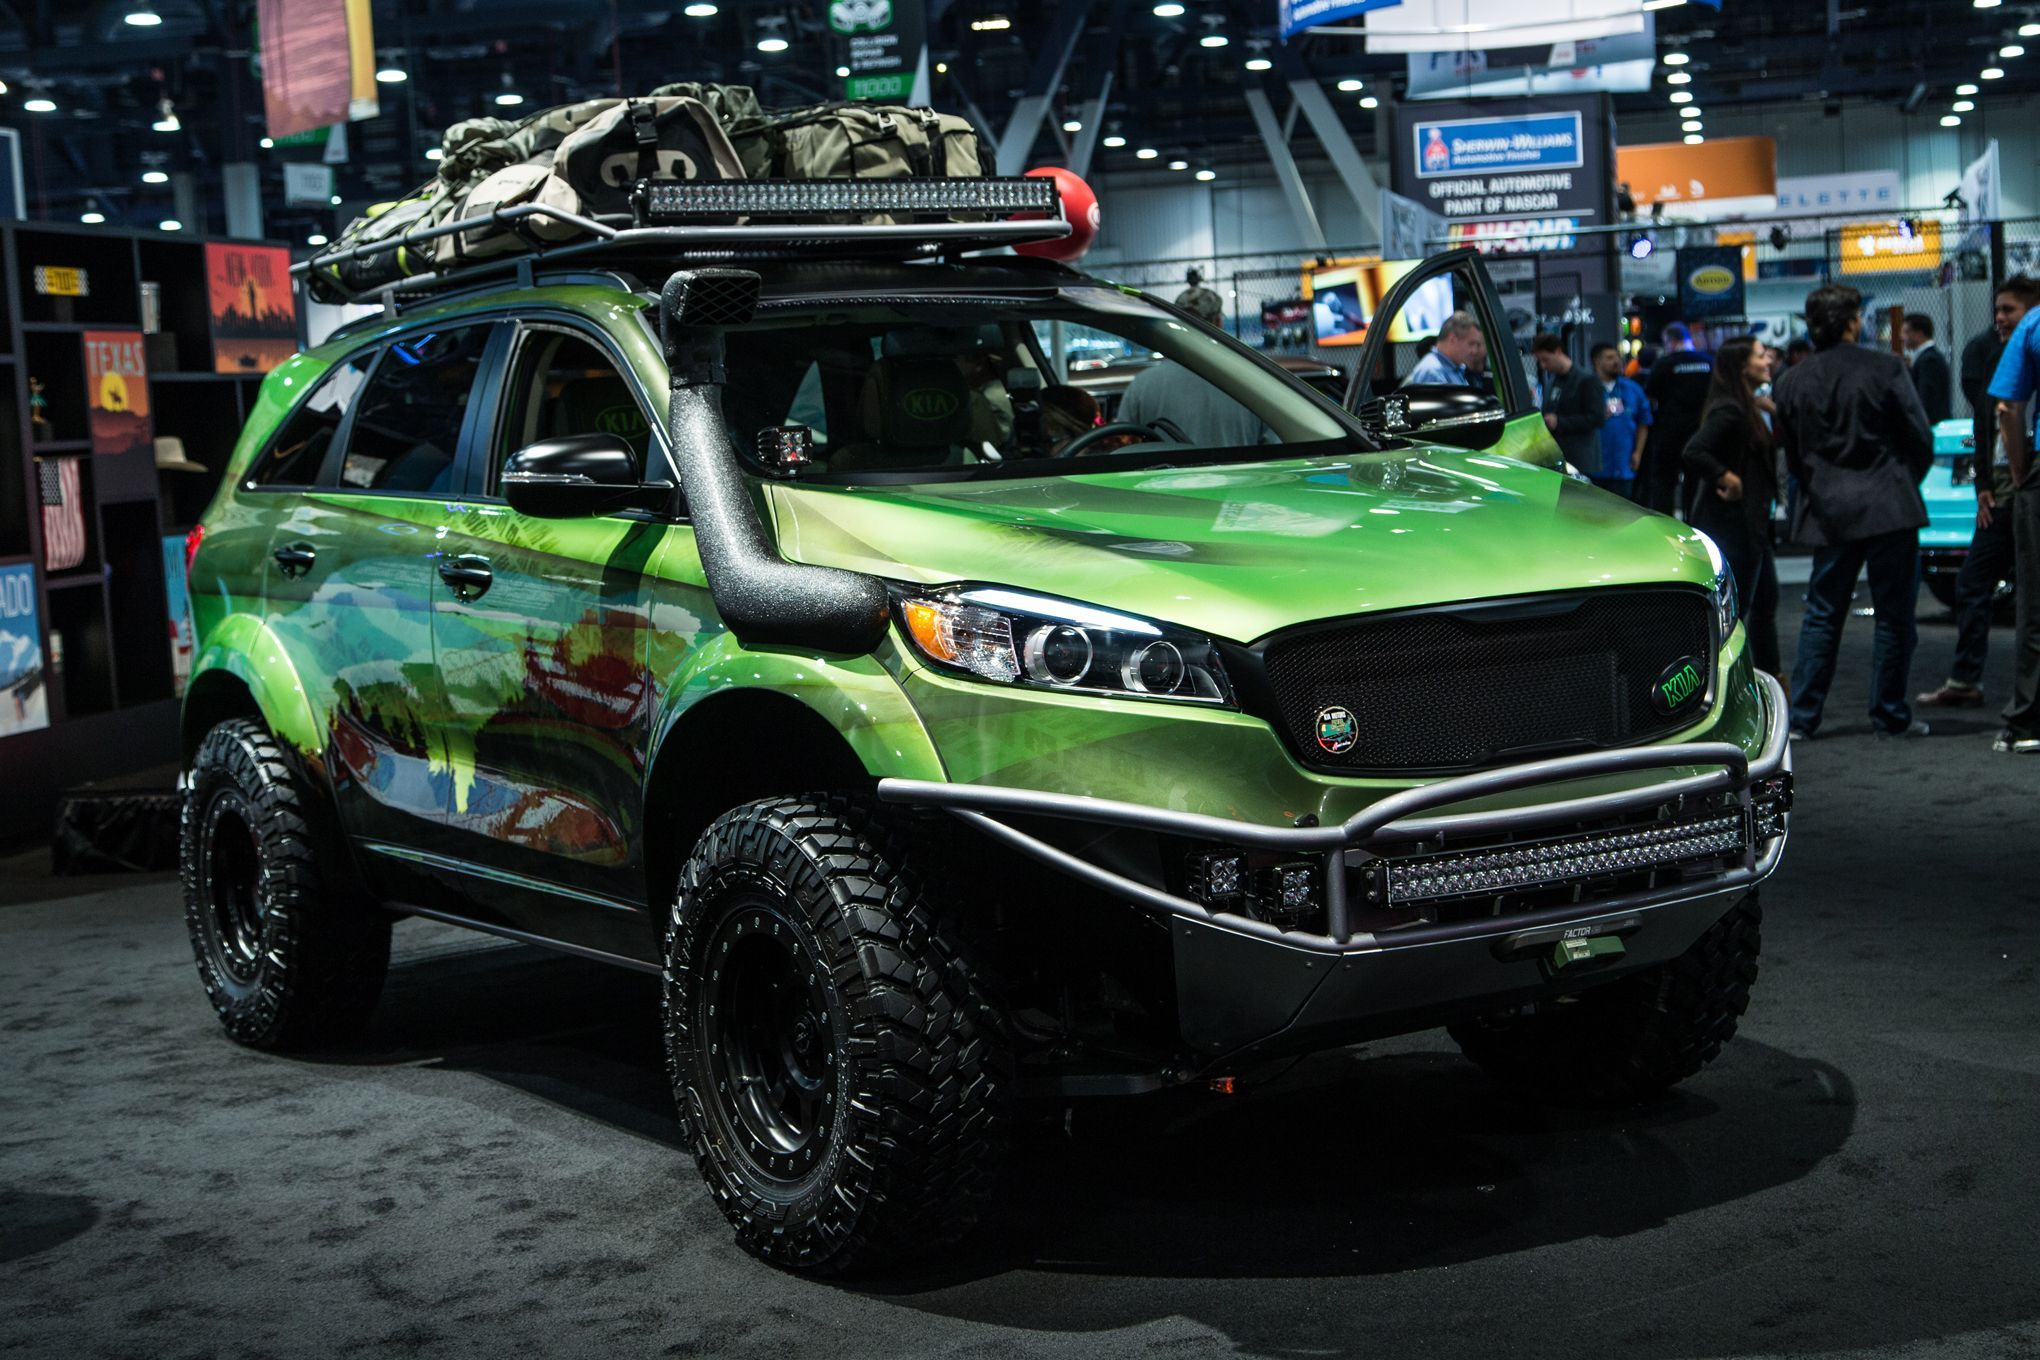 Kia Sorento Off Road Kit Photo Gallery 702261 Off Roading Kia Sorento Concept Teased For Sema Kia Sorento Sorento Kia